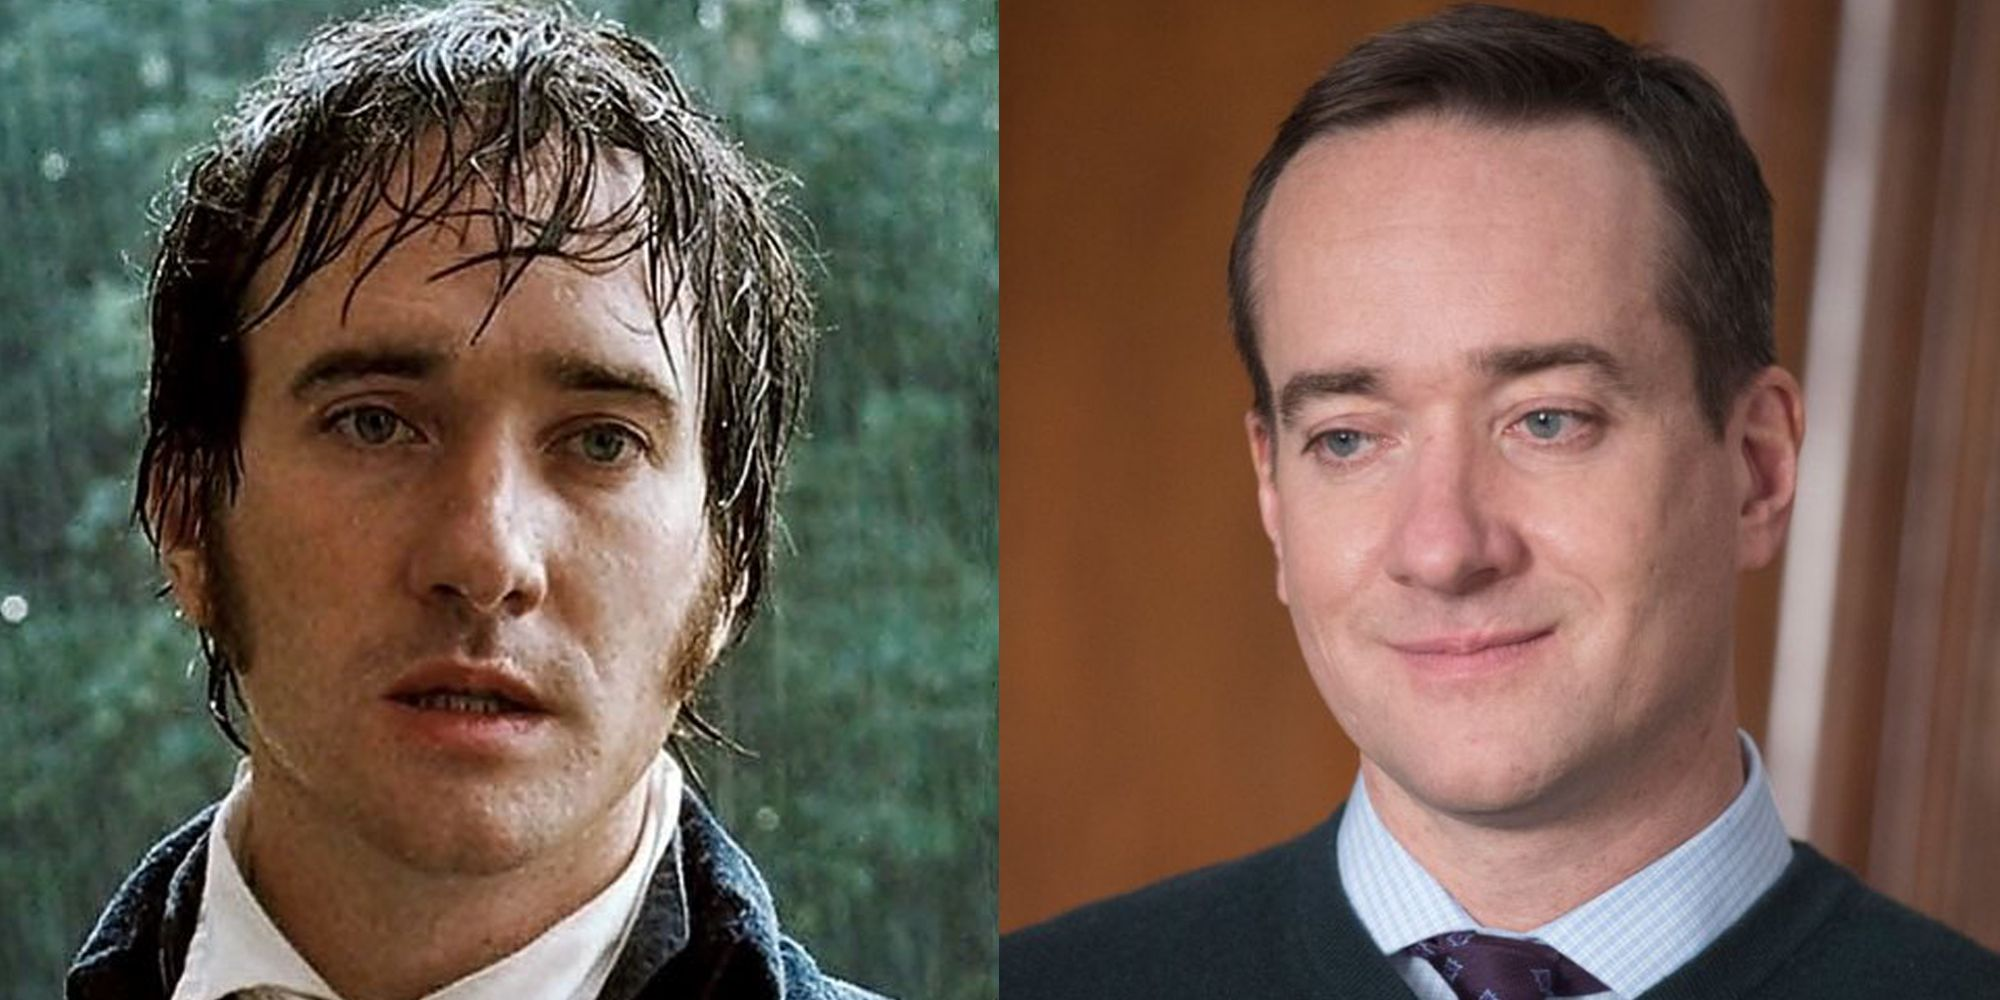 Why Didn't Any of You Clowns Tell Me Tom Wambsgans Is Also Mr. Darcy from 2005's 'Pride and Prejudice'?